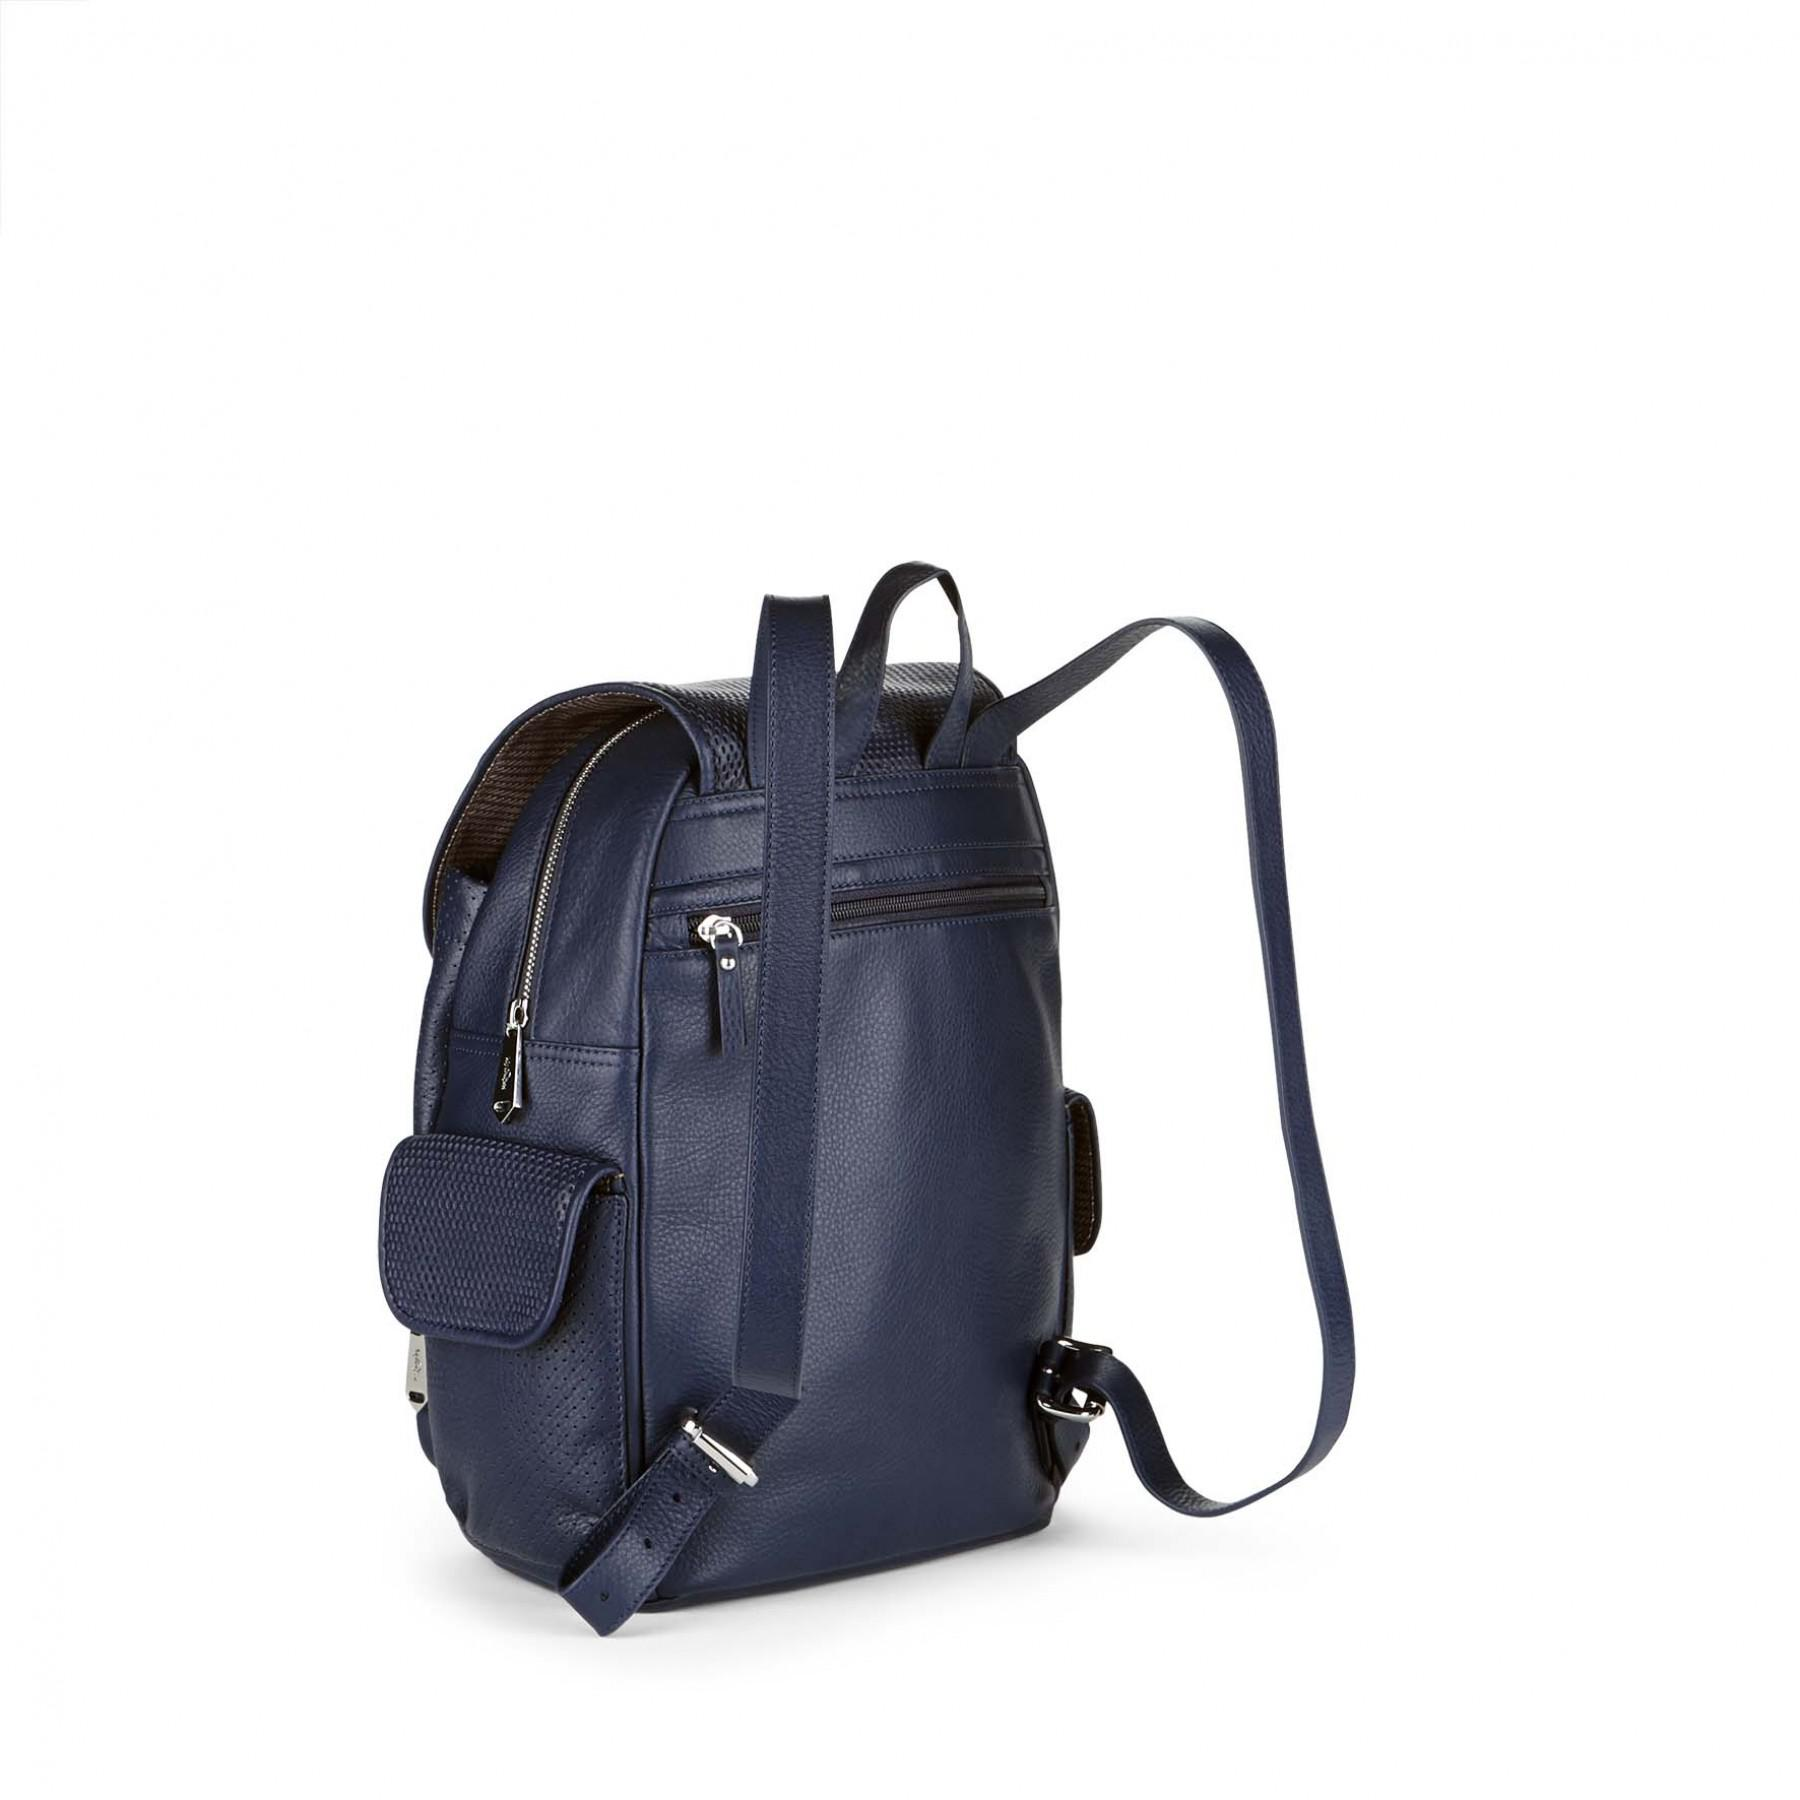 3e8ae2580 Kipling City Pack S Leather in Blue - Lyst